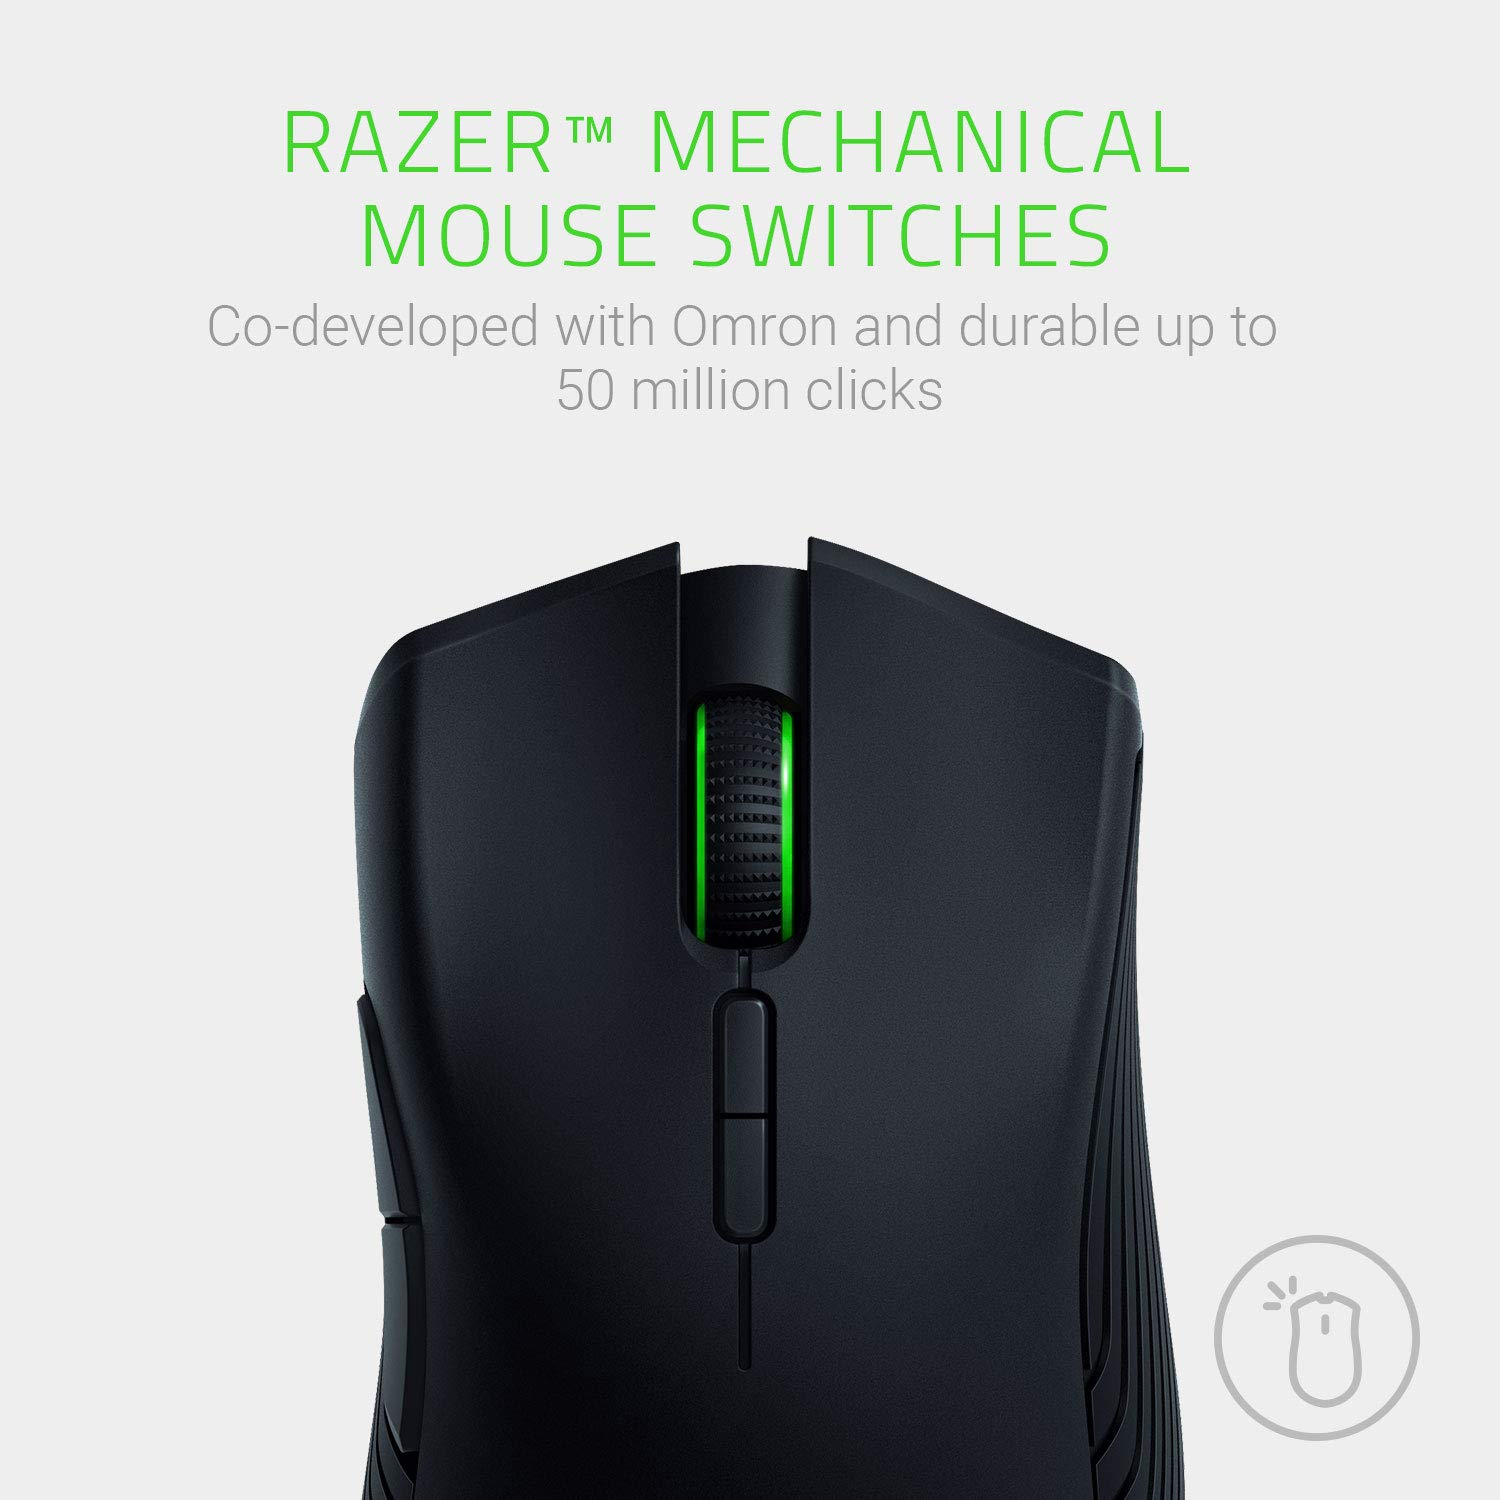 Razer Mamba Wireless Gaming Mouse: 16,000 DPI Optical Sensor - Chroma RGB Lighting - 7 Programmable Buttons - Mechanical Switches - Up to 50 Hr Battery Life by Razer (Image #4)